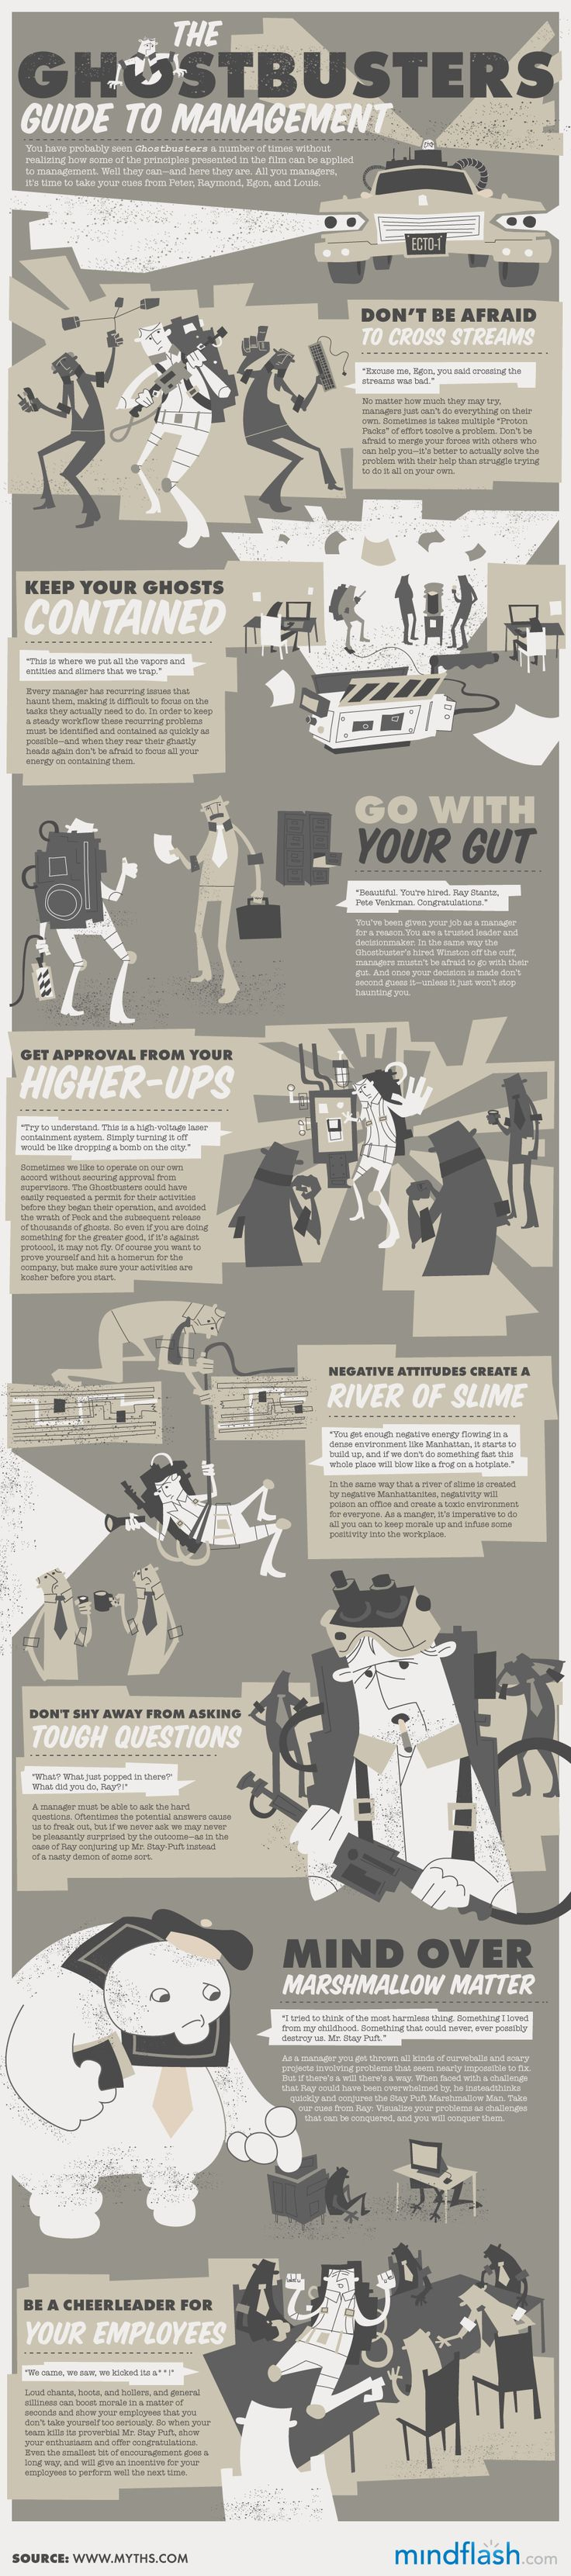 Infographic: The Ghostbusters' Guide to Managing People